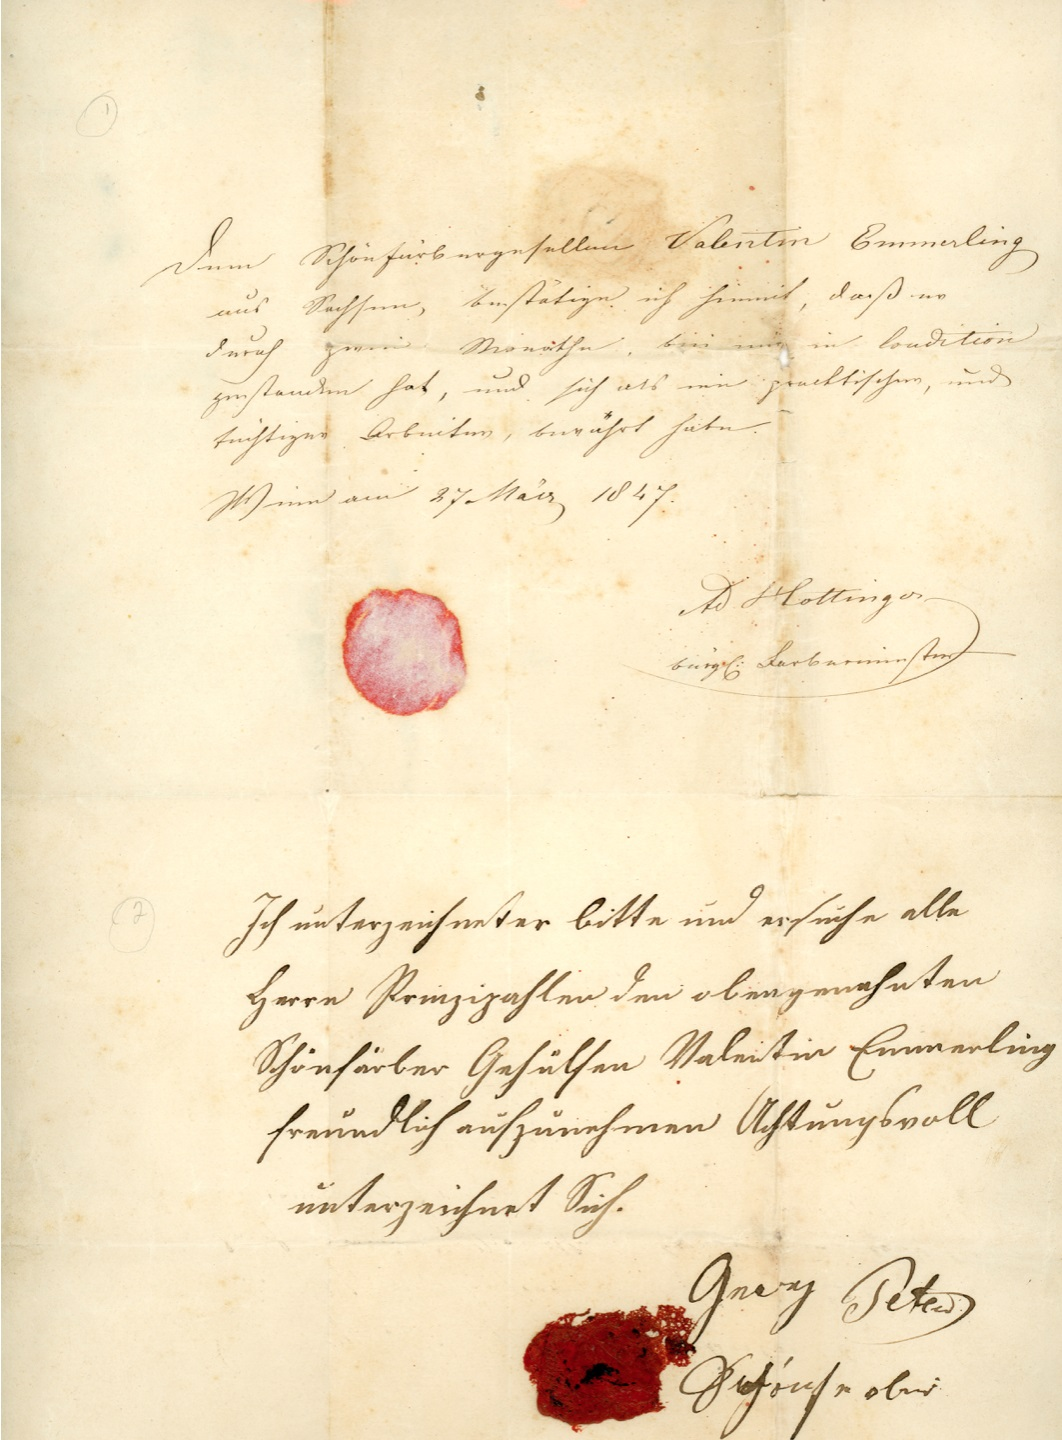 An old letter with script on it and the remnants of a wax seal.